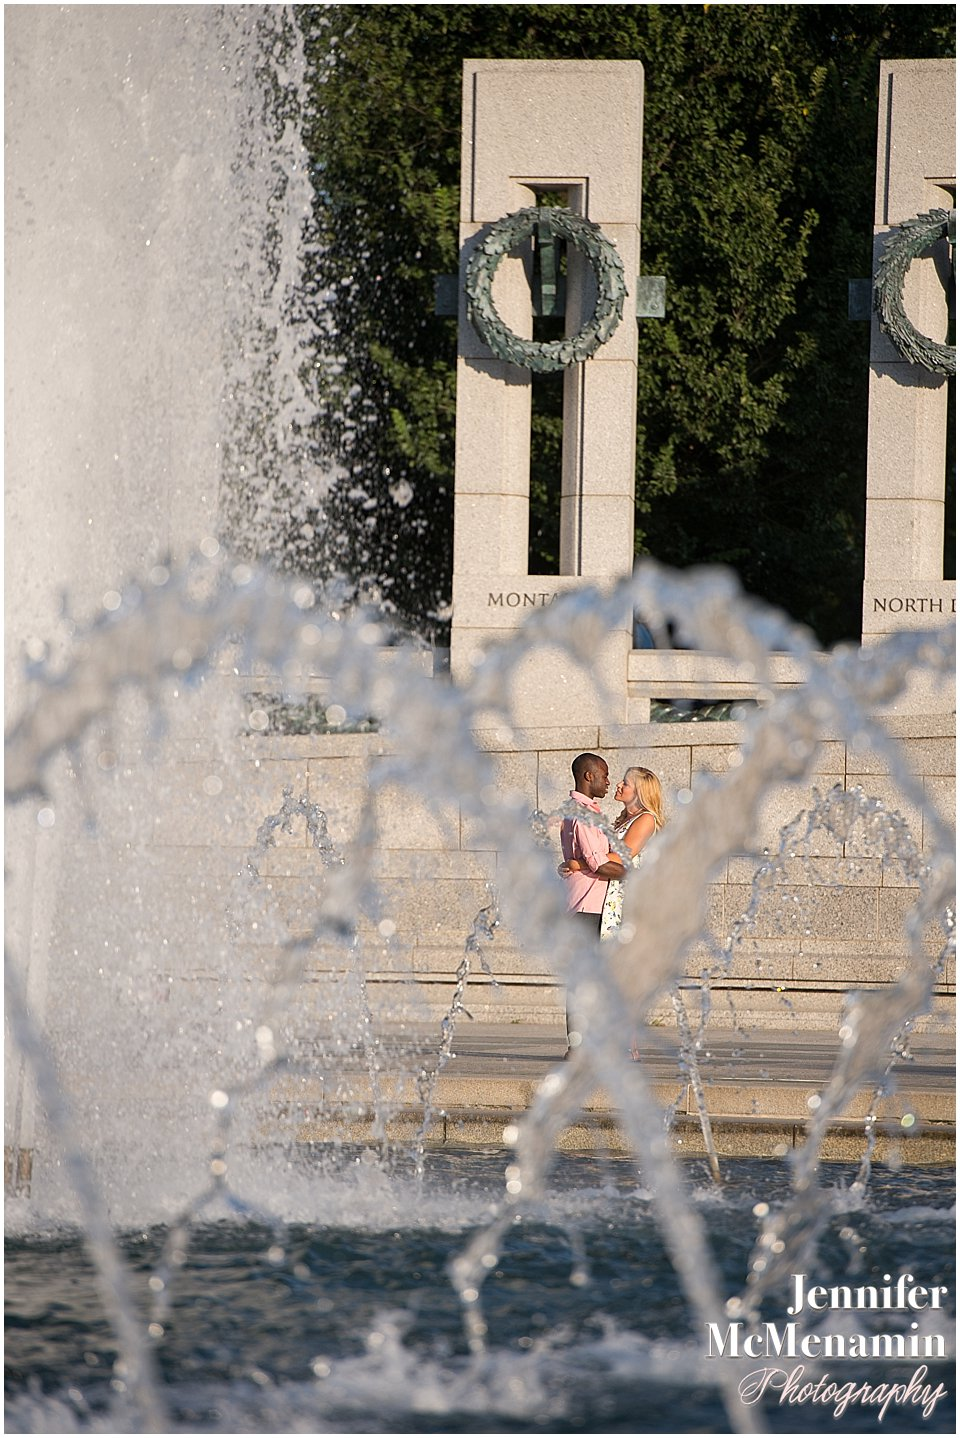 293-FrammAgorsor_00798-0141_Jennifer-McMenamin-Photography-DC-Engagement-photos